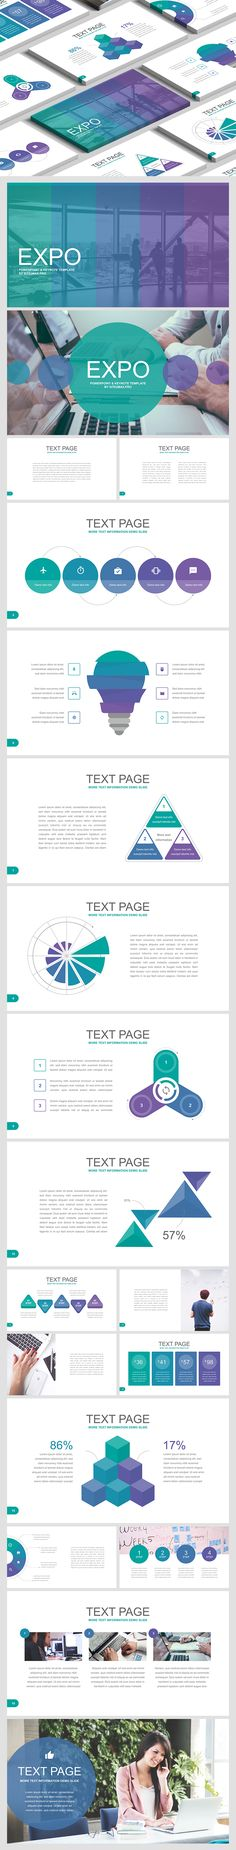 FREE Keynote template Download link: https://hislide.io/product/expo-free-keynote-template/ #marketing #keynote #free #business #infographic #violet #2017